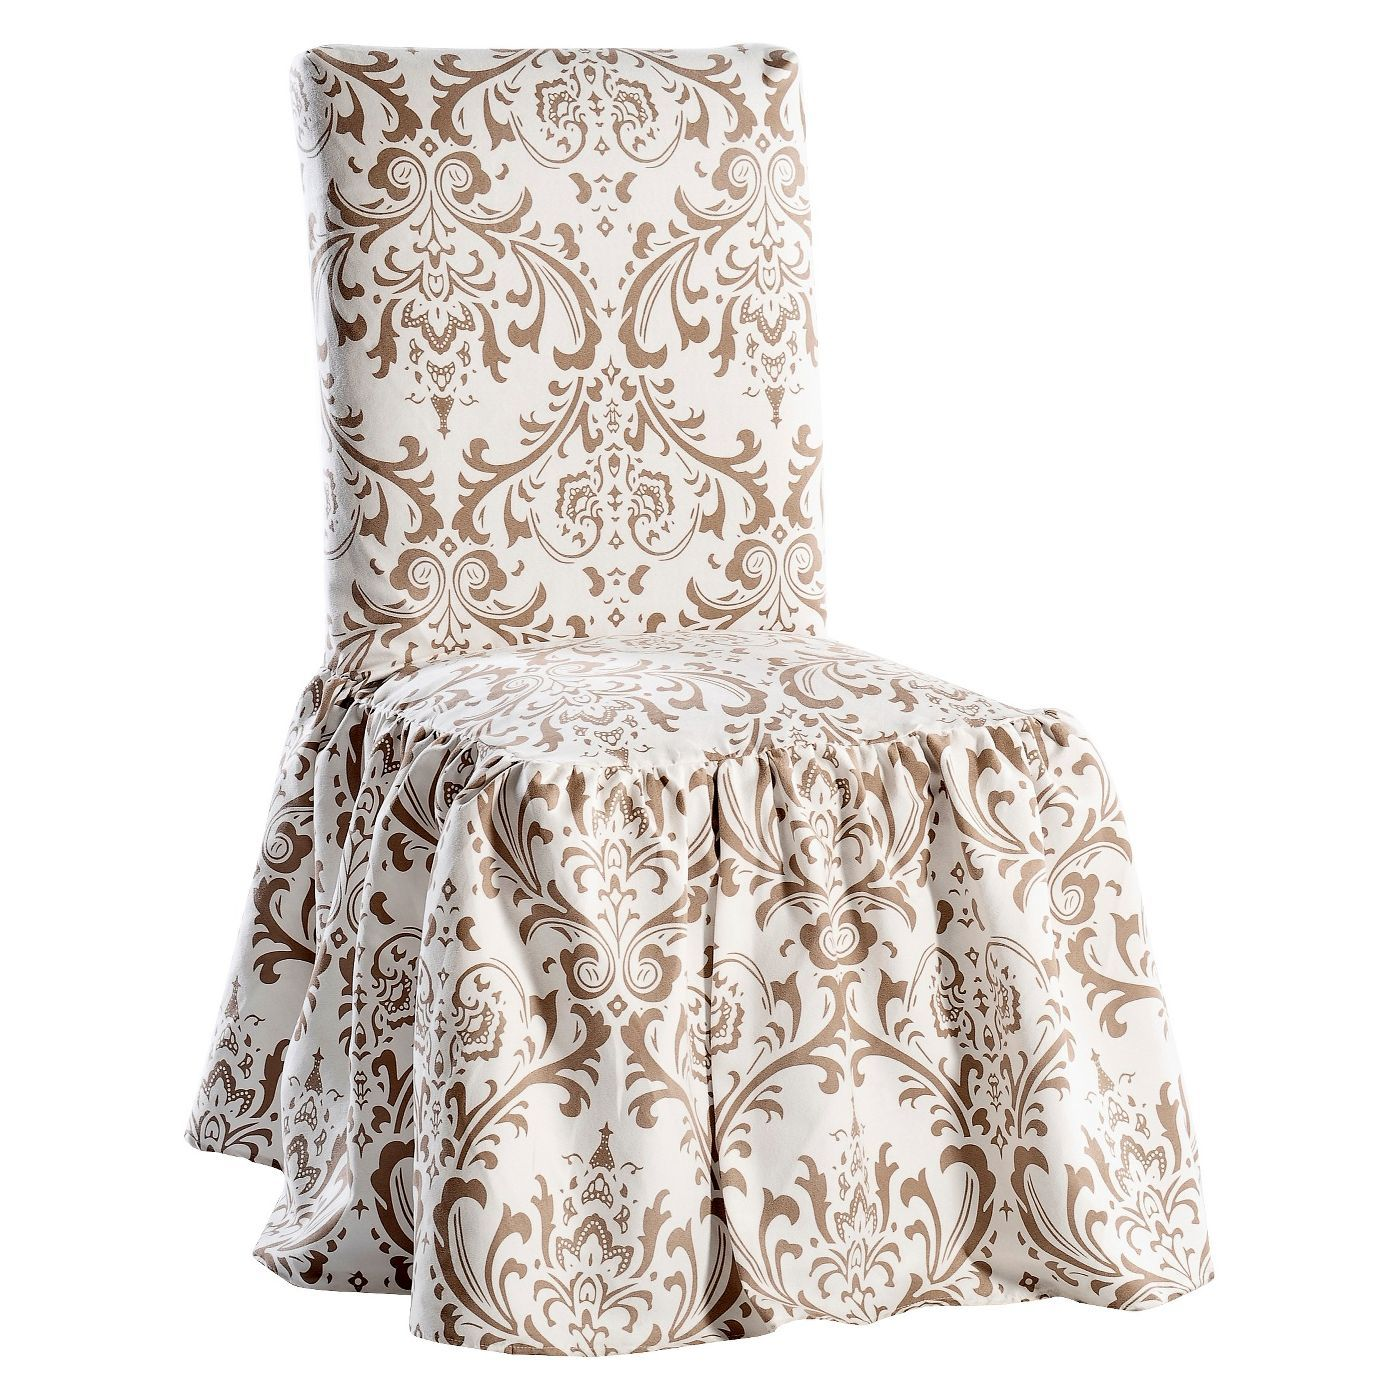 Damask Dining Chair Slipcover Target Slipcovers for